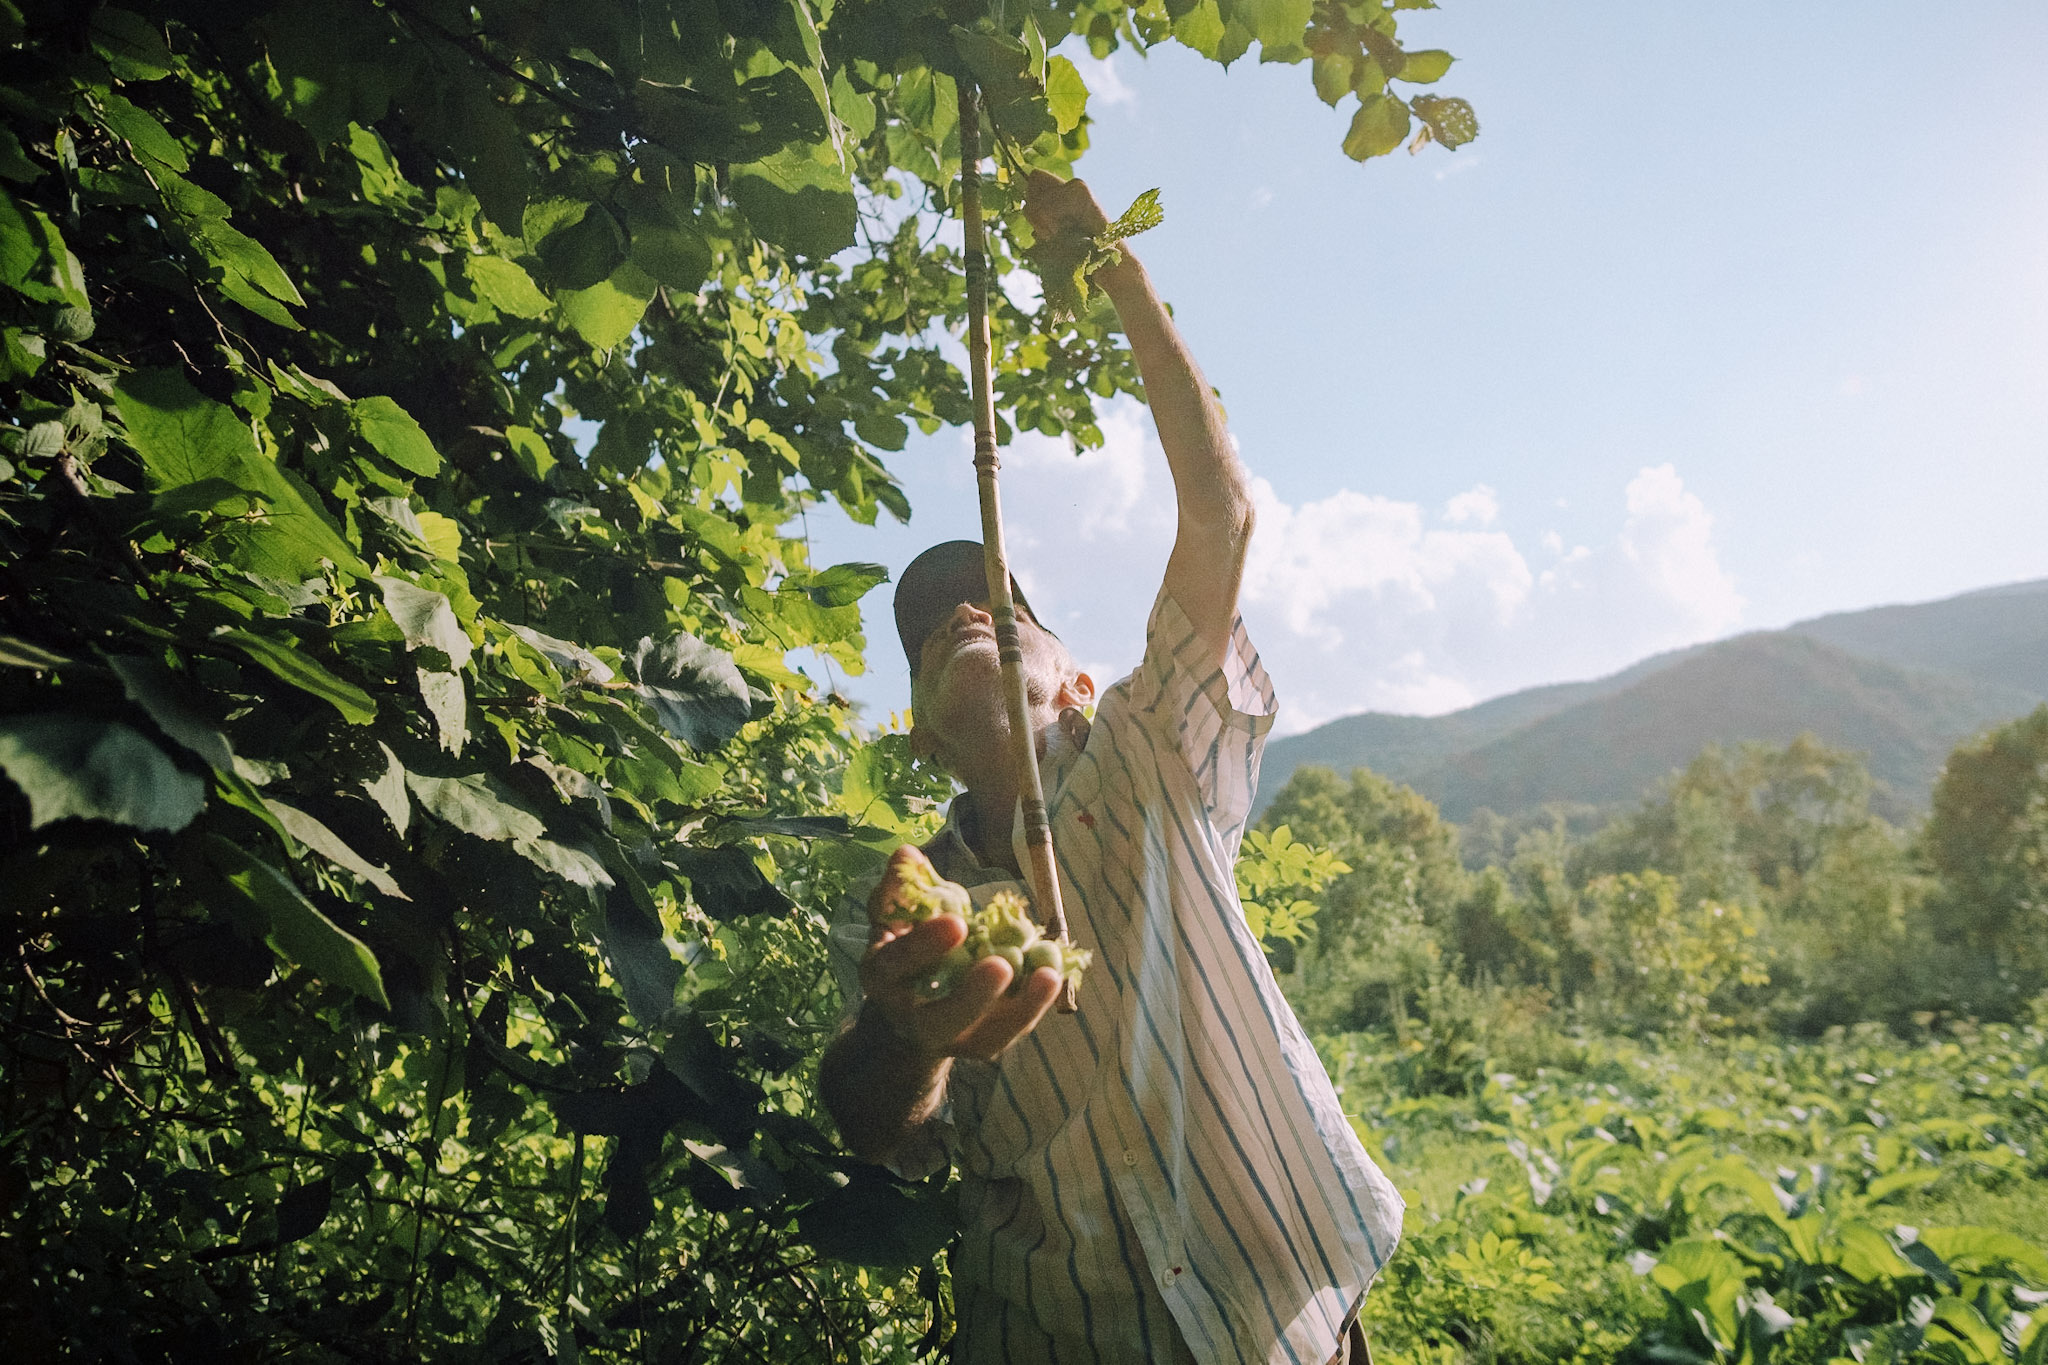 Dimitri Mais' father, Paata, is shown picking hazelnuts from a tree in his yard in Tskhmori